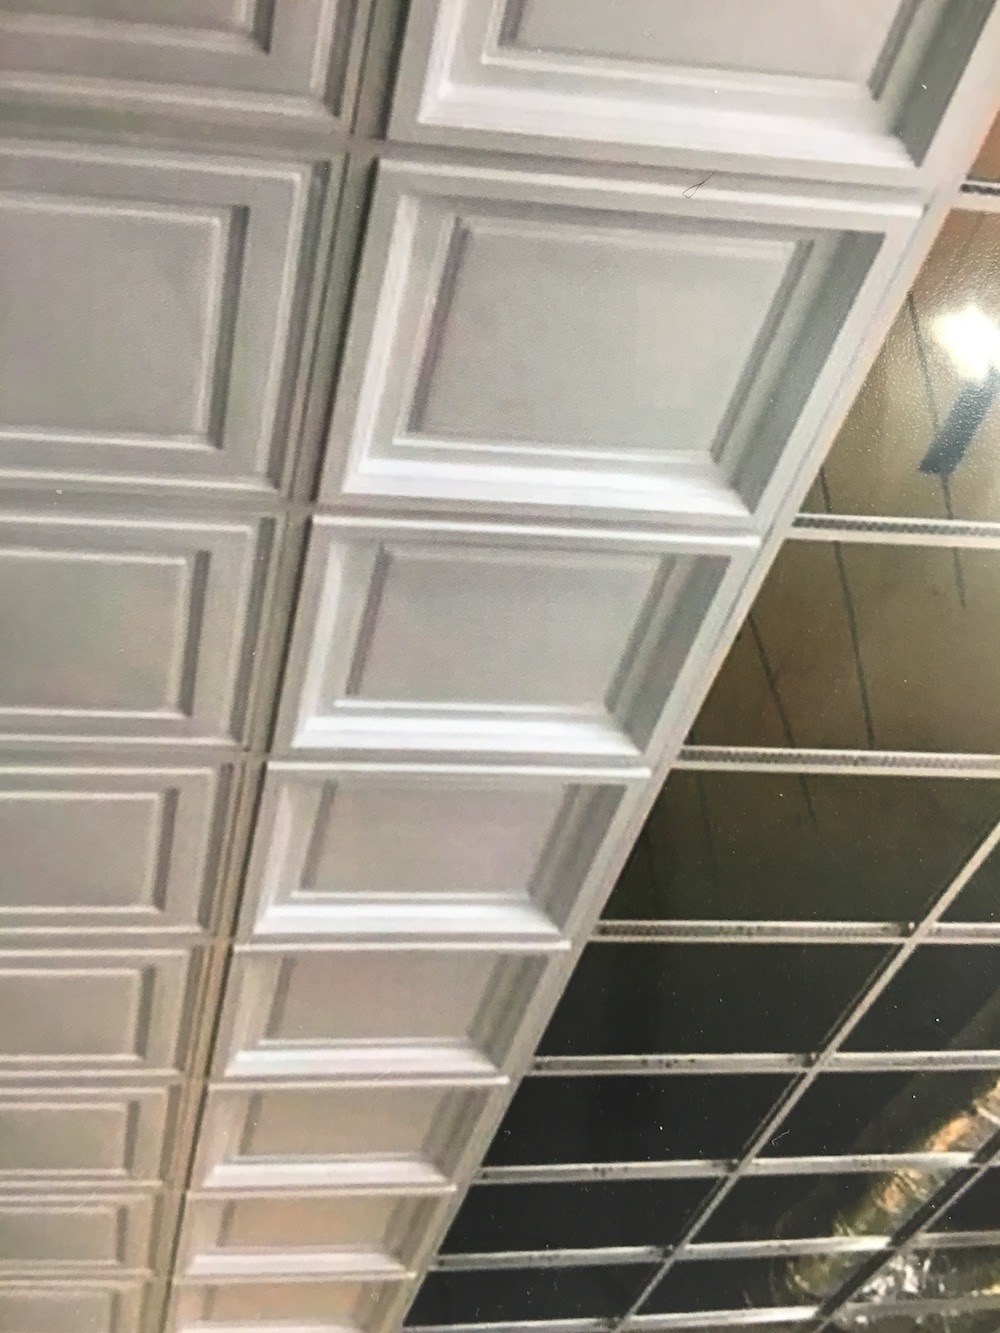 Ceiling view with AC/heating ducts showing, March 2017